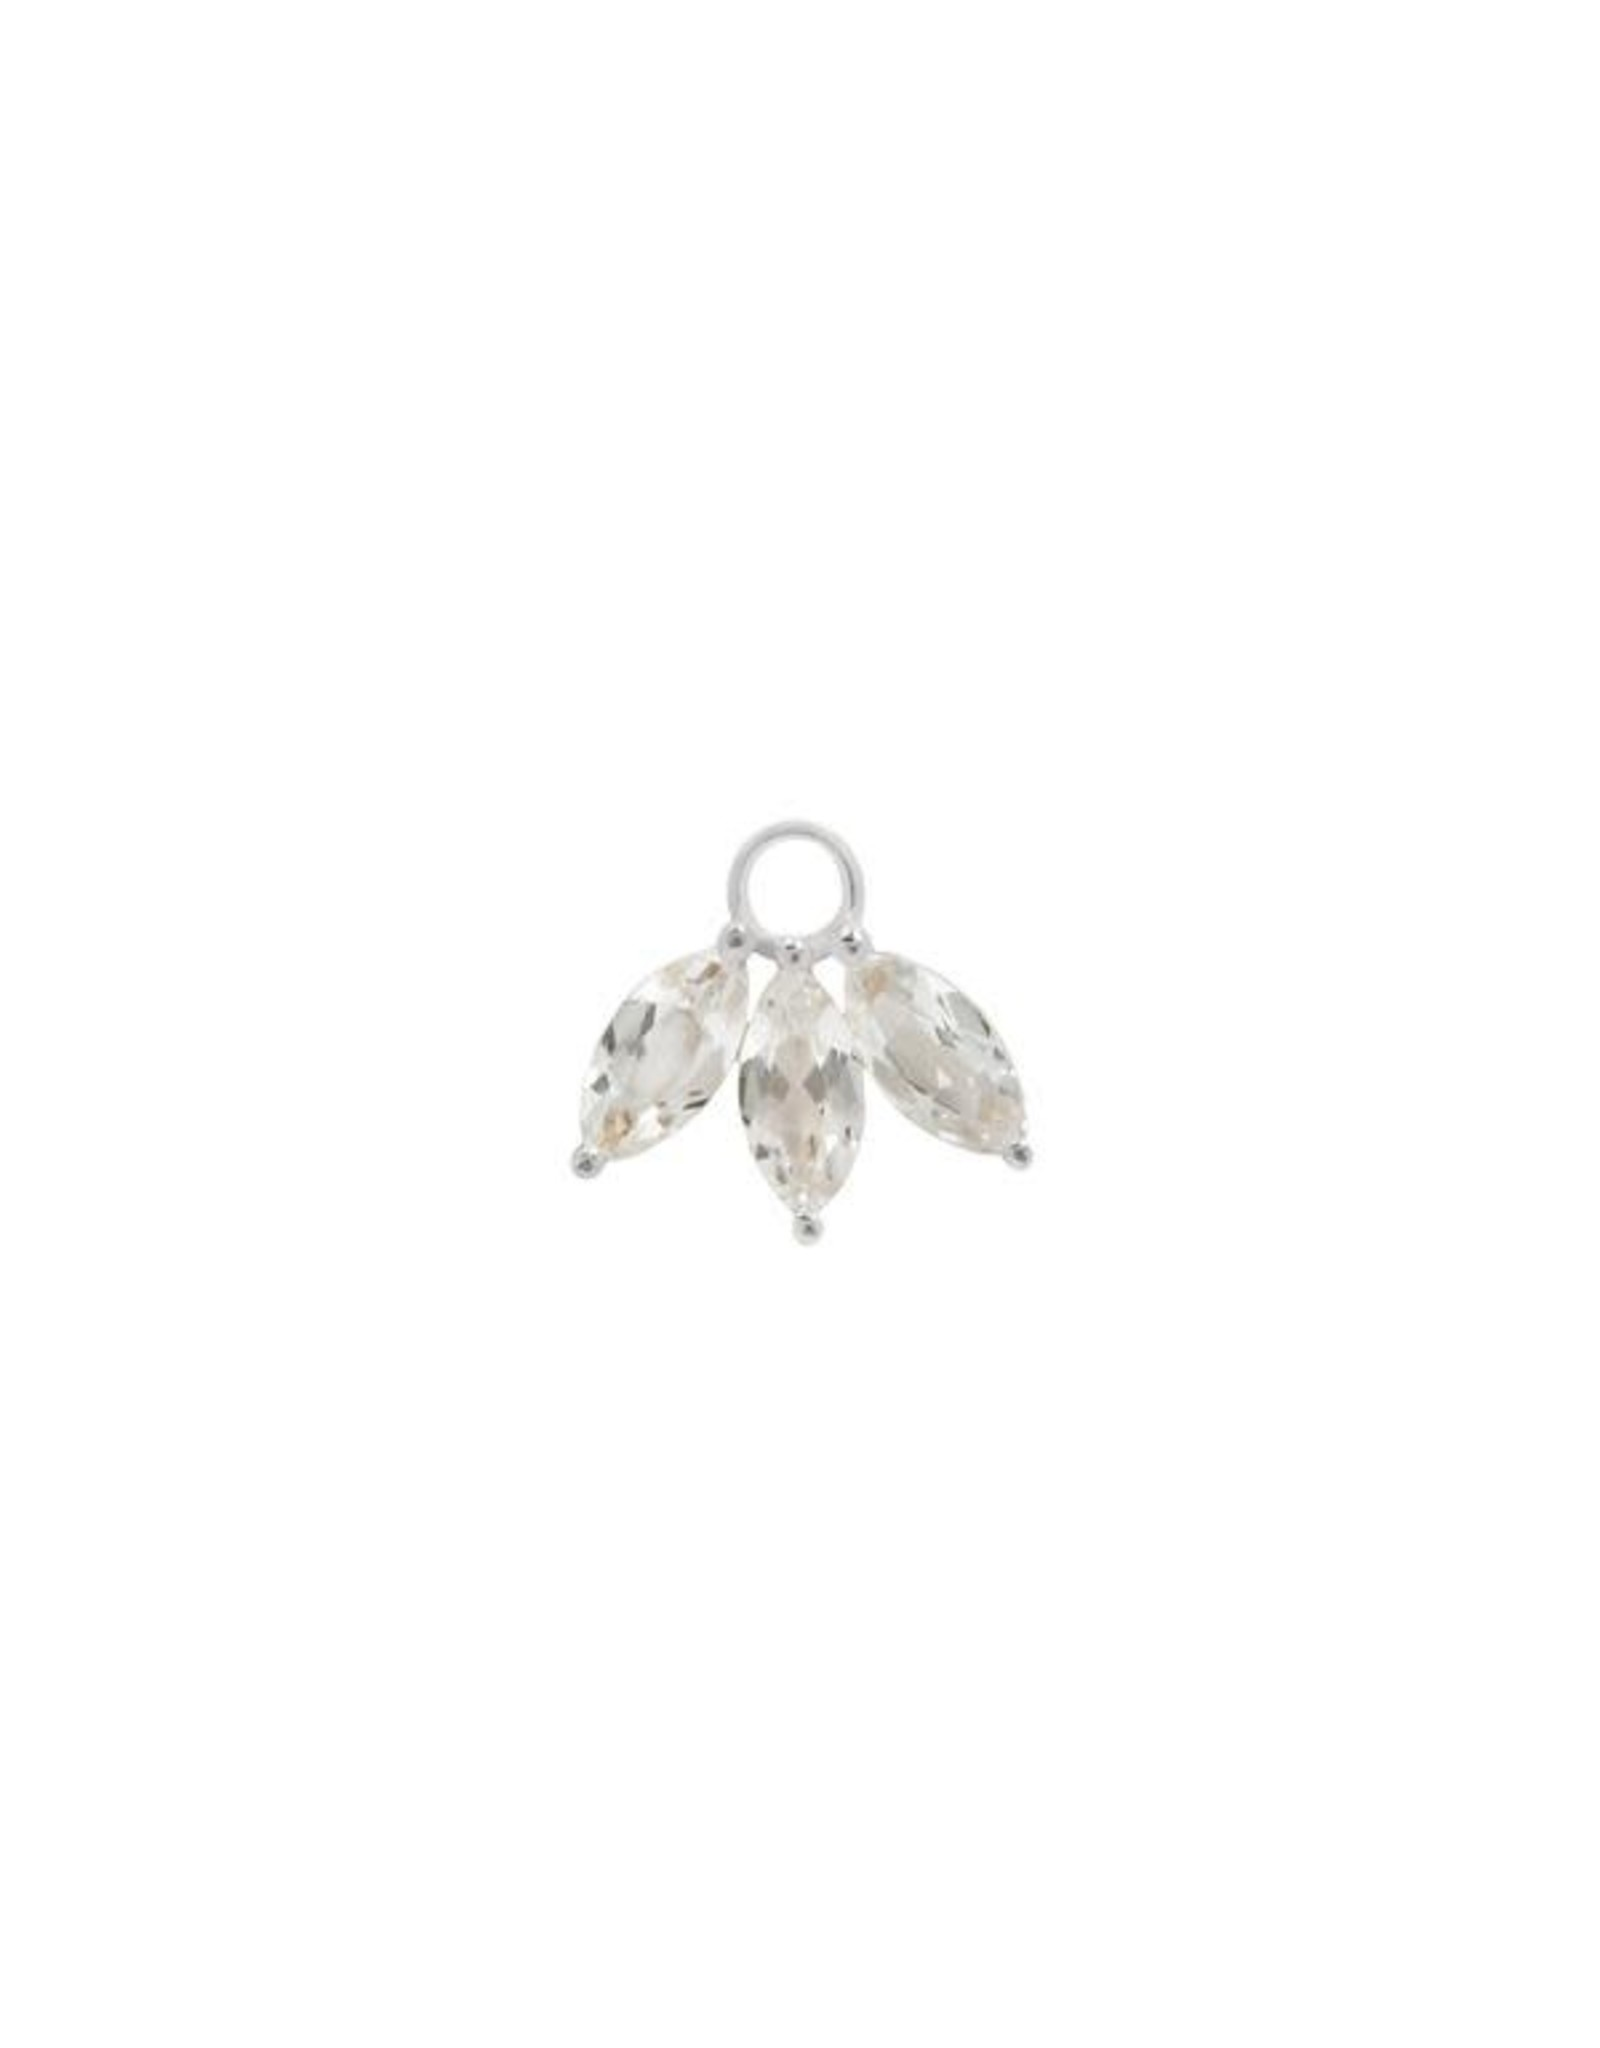 """Buddha Jewelry Organics Buddha Jewelry Organics """"Moet"""" charm with marquise white topaz"""